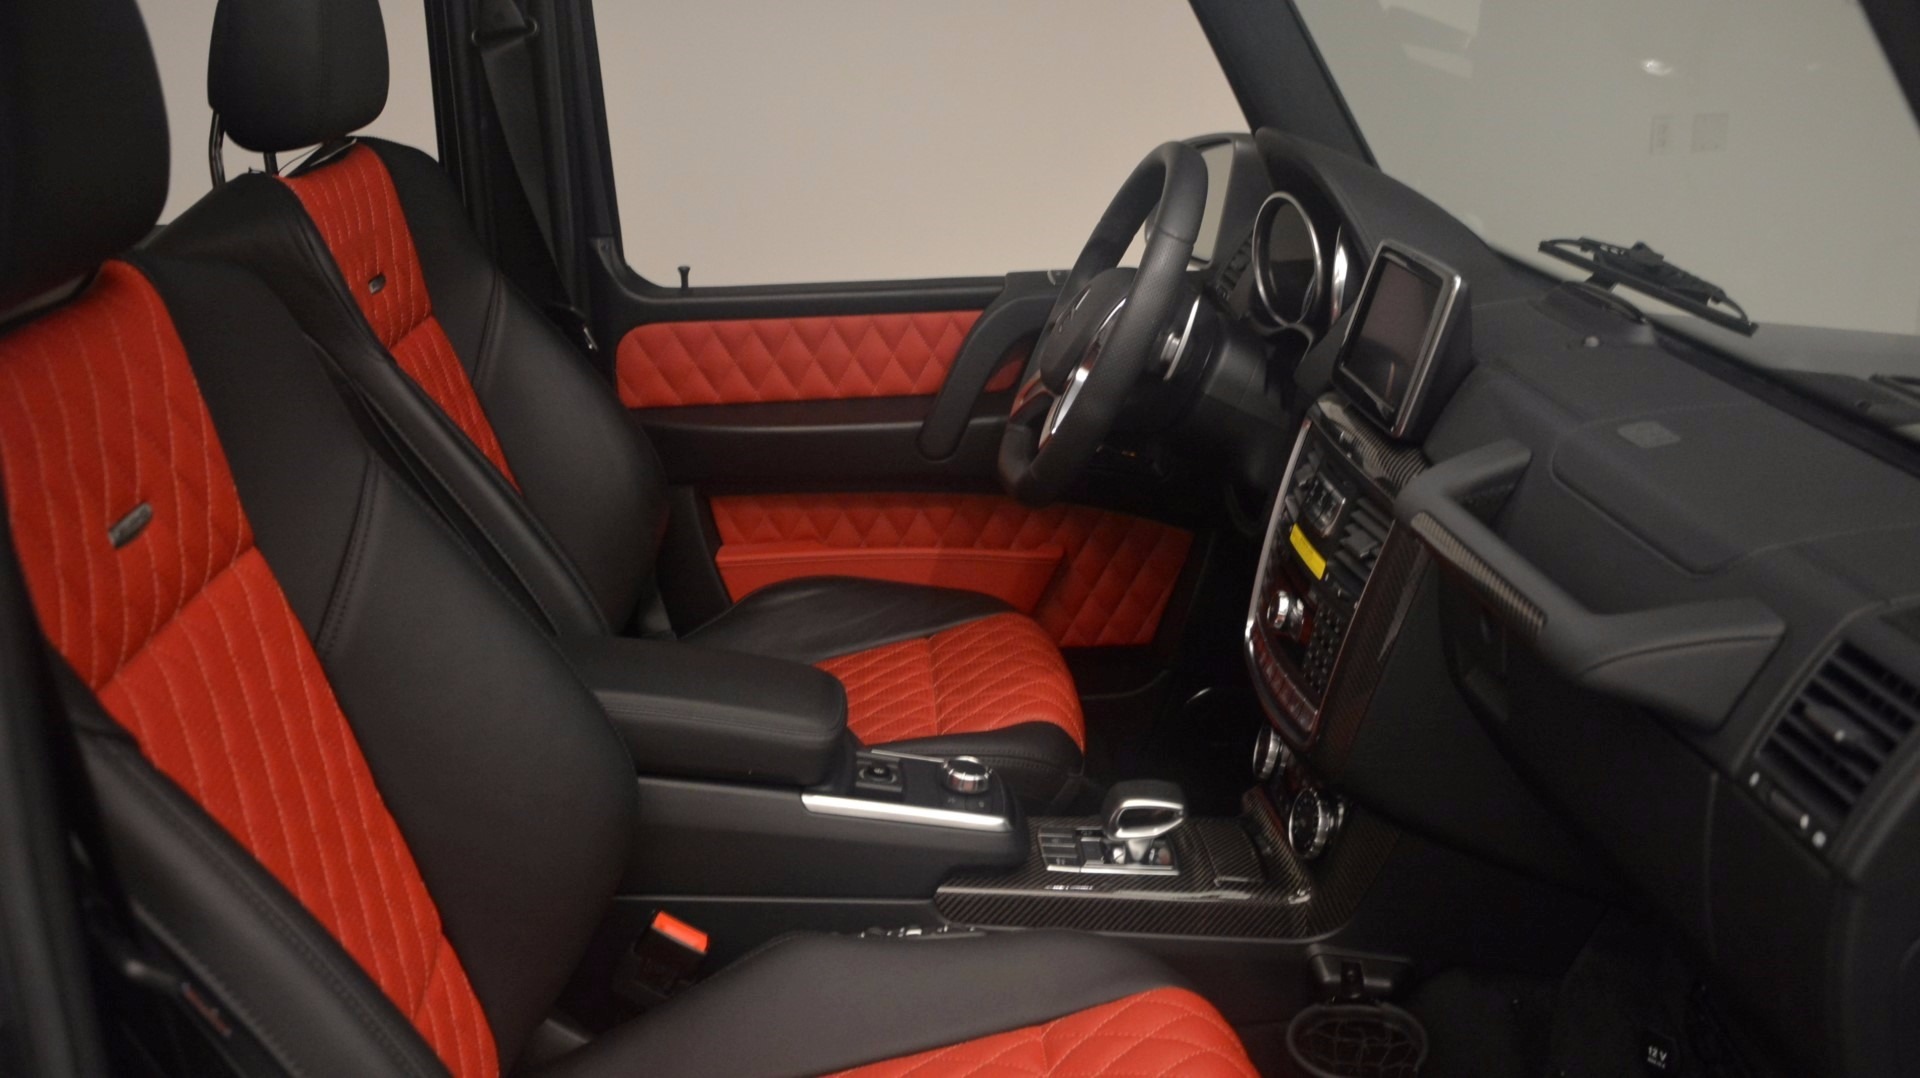 Used 2016 Mercedes Benz G-Class G 63 AMG For Sale In Greenwich, CT. Alfa Romeo of Greenwich, 7180 1075_p17